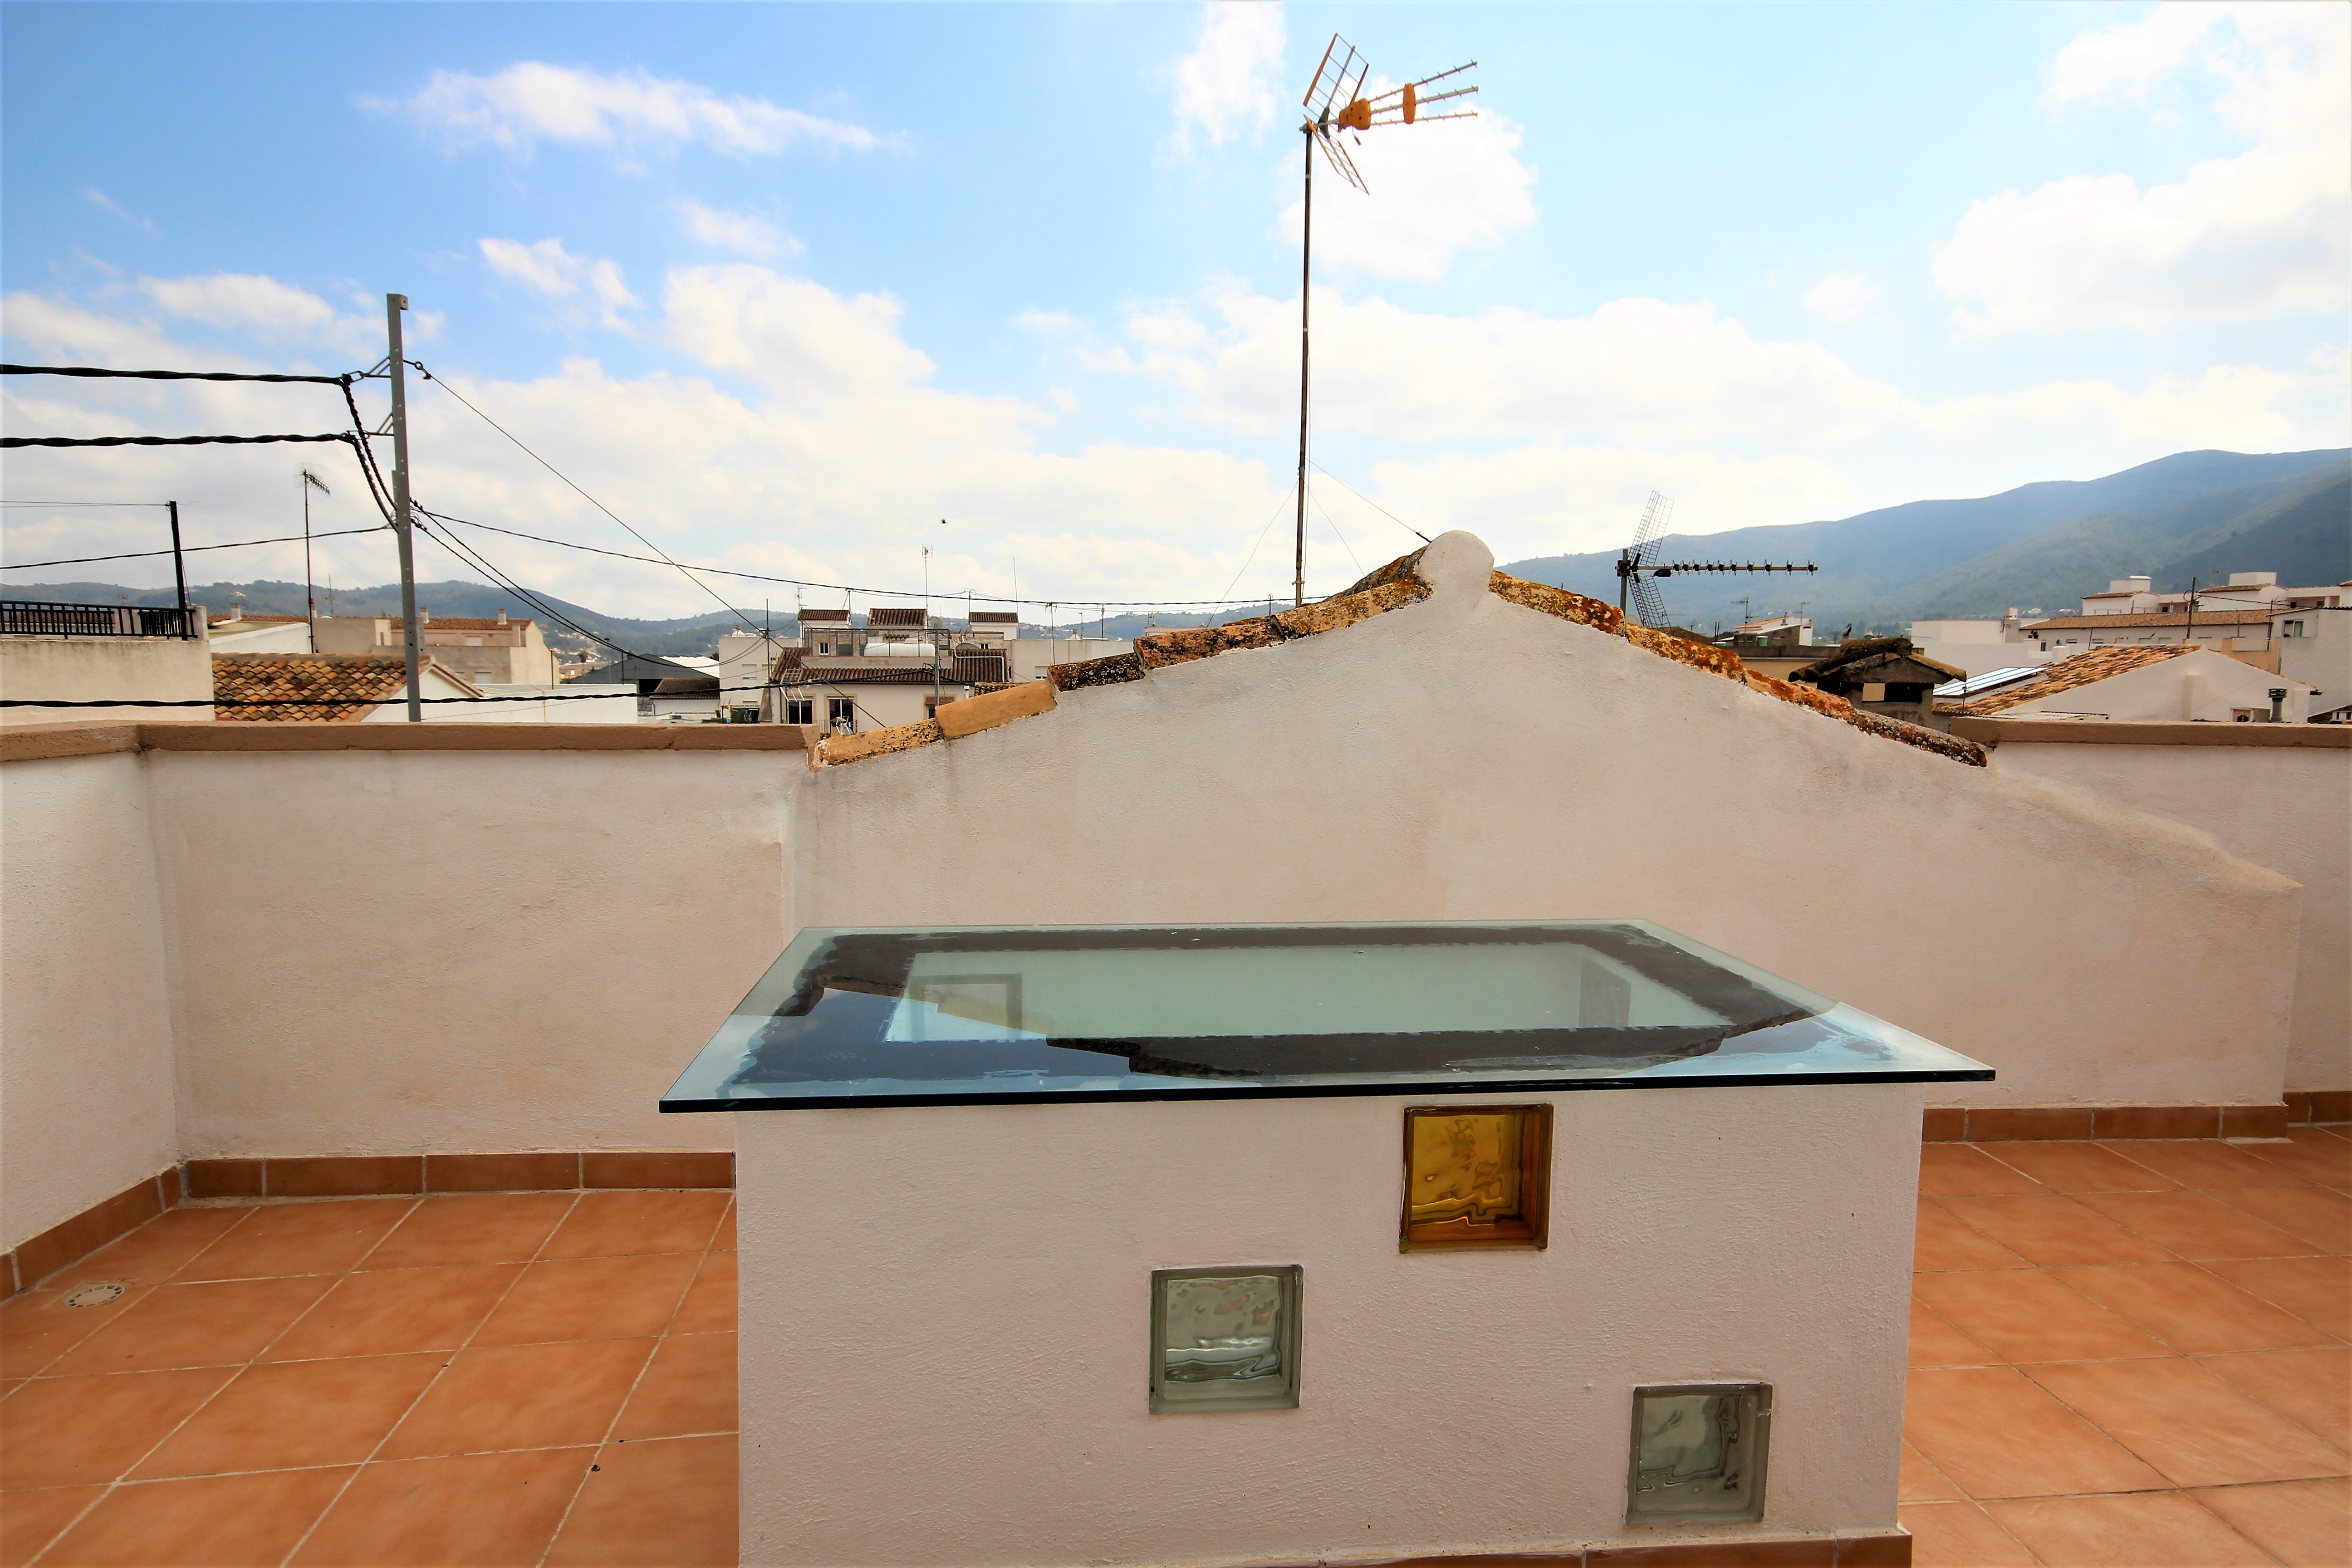 4 bedroom house / villa for sale in Jalon / Xaló, Costa Blanca